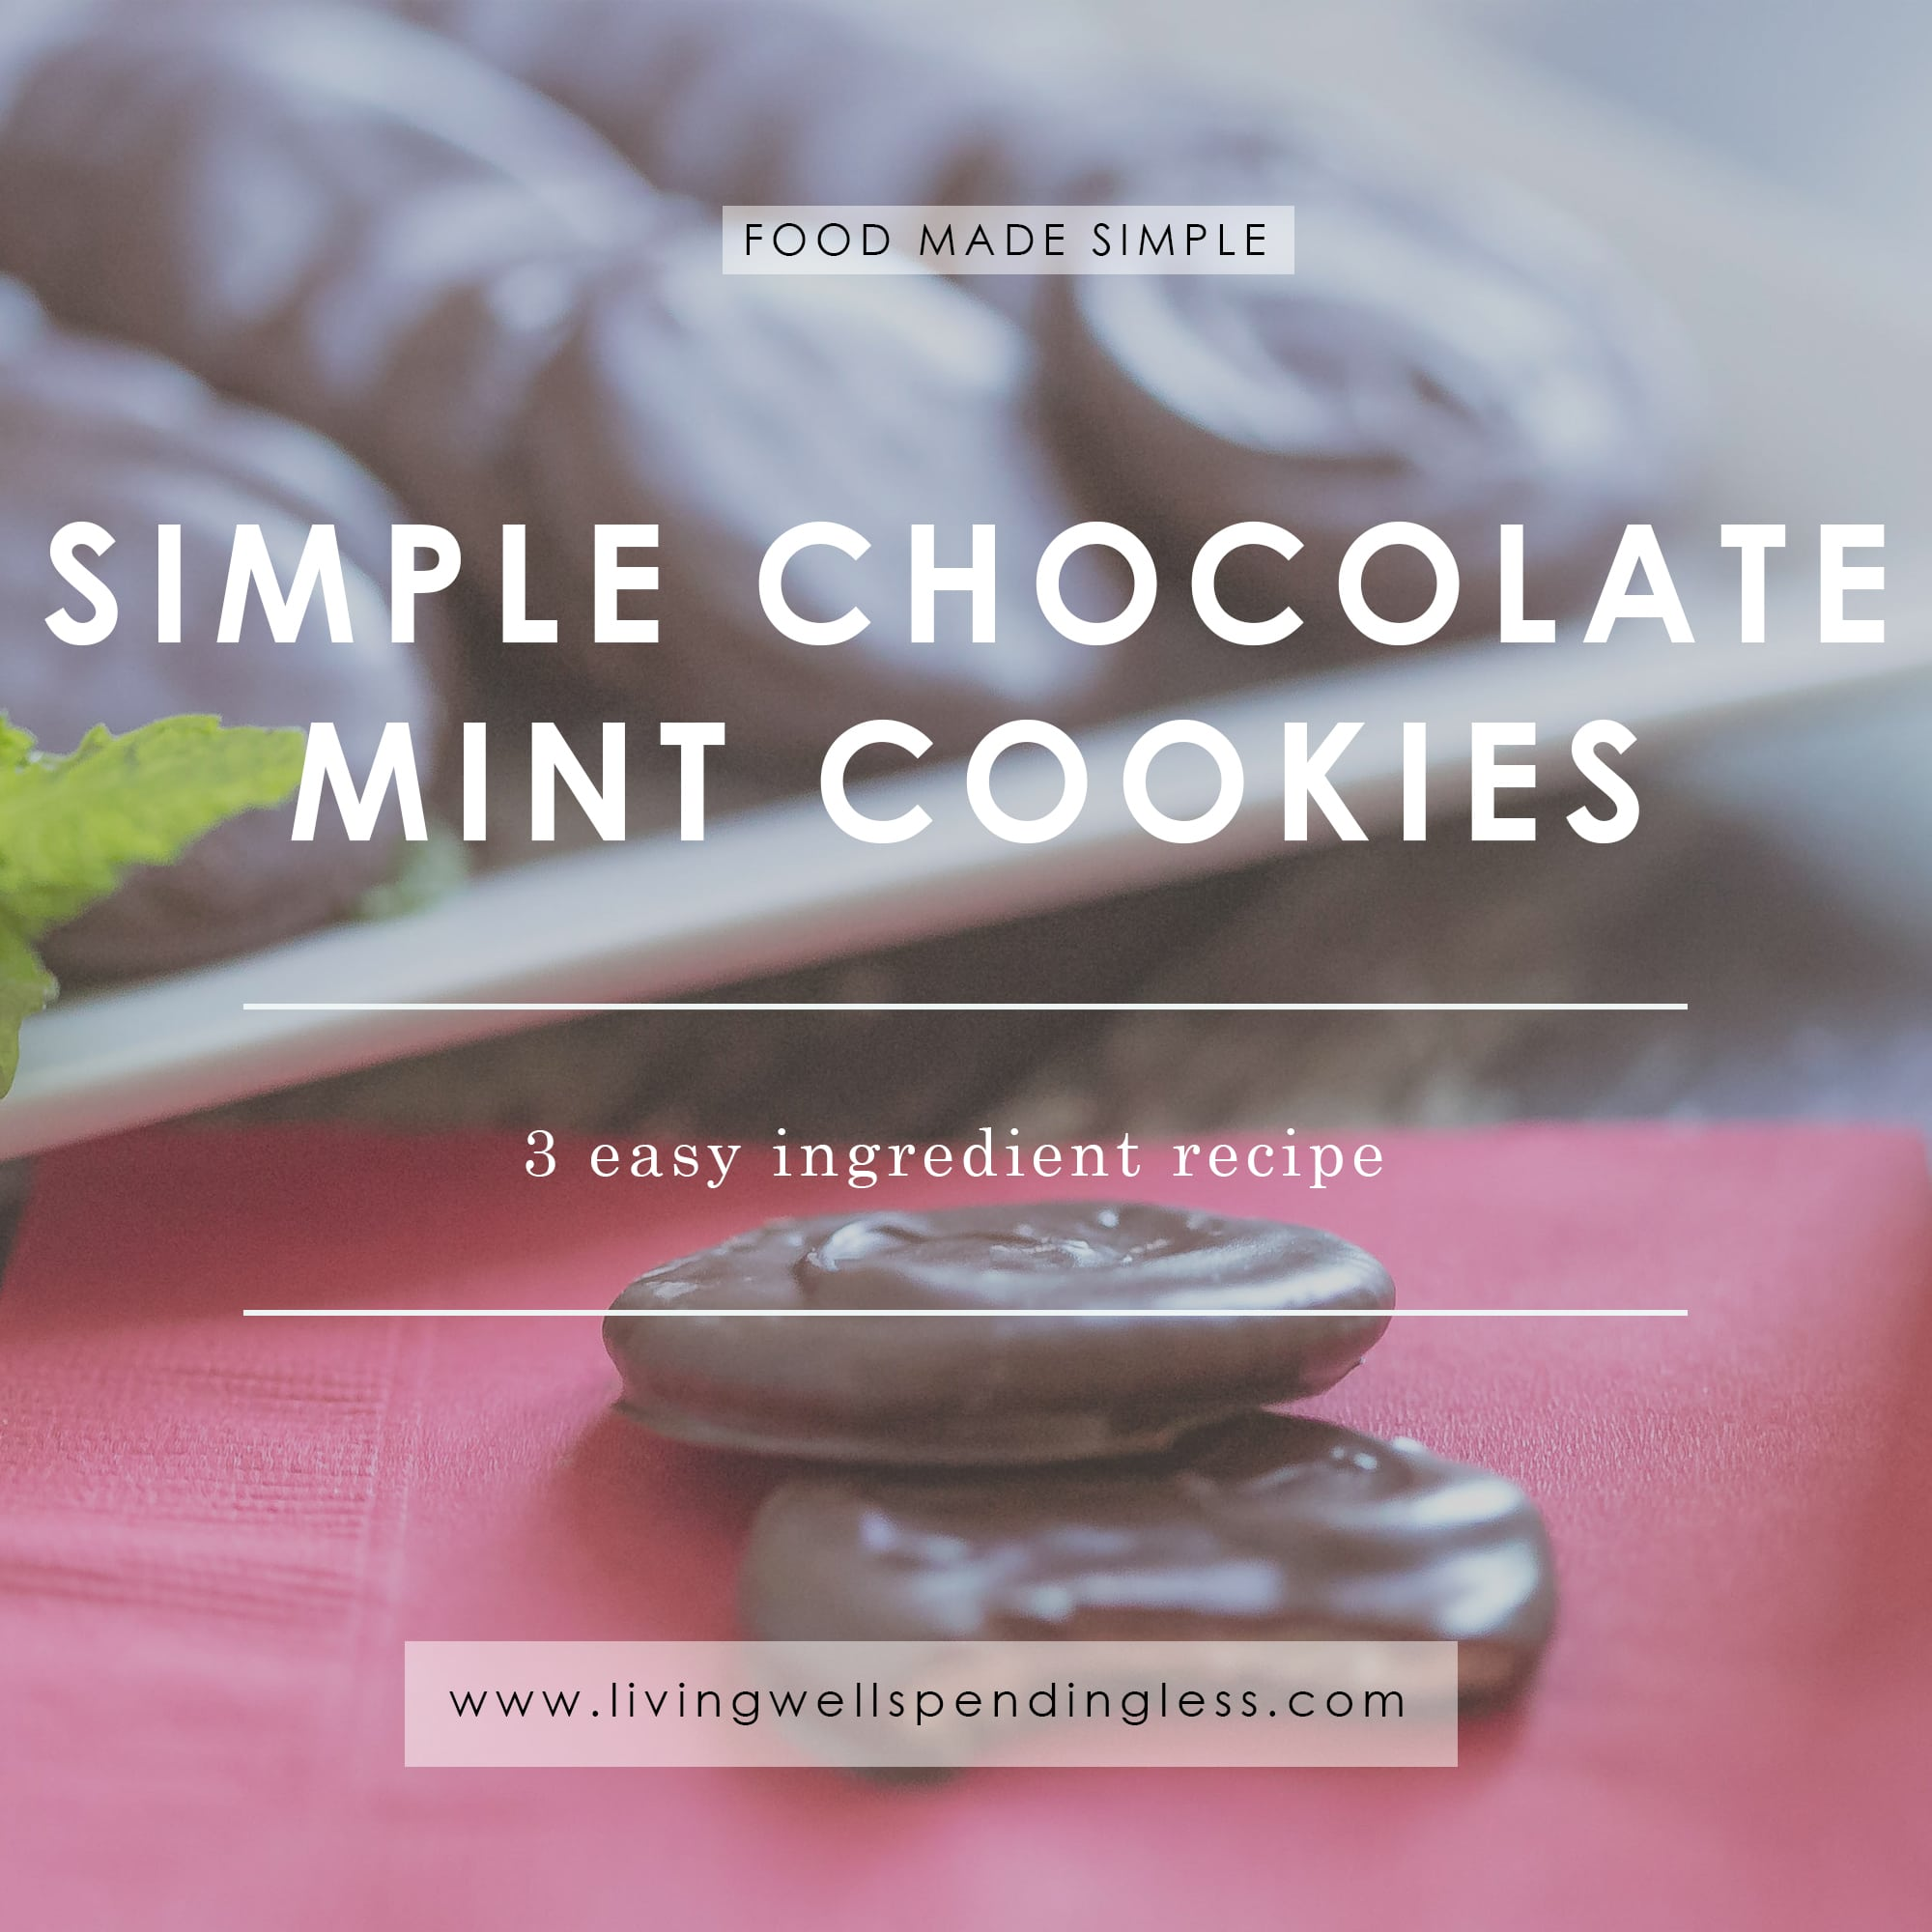 Craving Thin Mints?  These Simple Chocolate Mint Cookies are a dead ringer for your favorite Girl Scout cookies.  Better yet, with just 3 simple ingredients, they literally come together in less than 5 minutes!  Homemade has never been this easy...or this delicious!